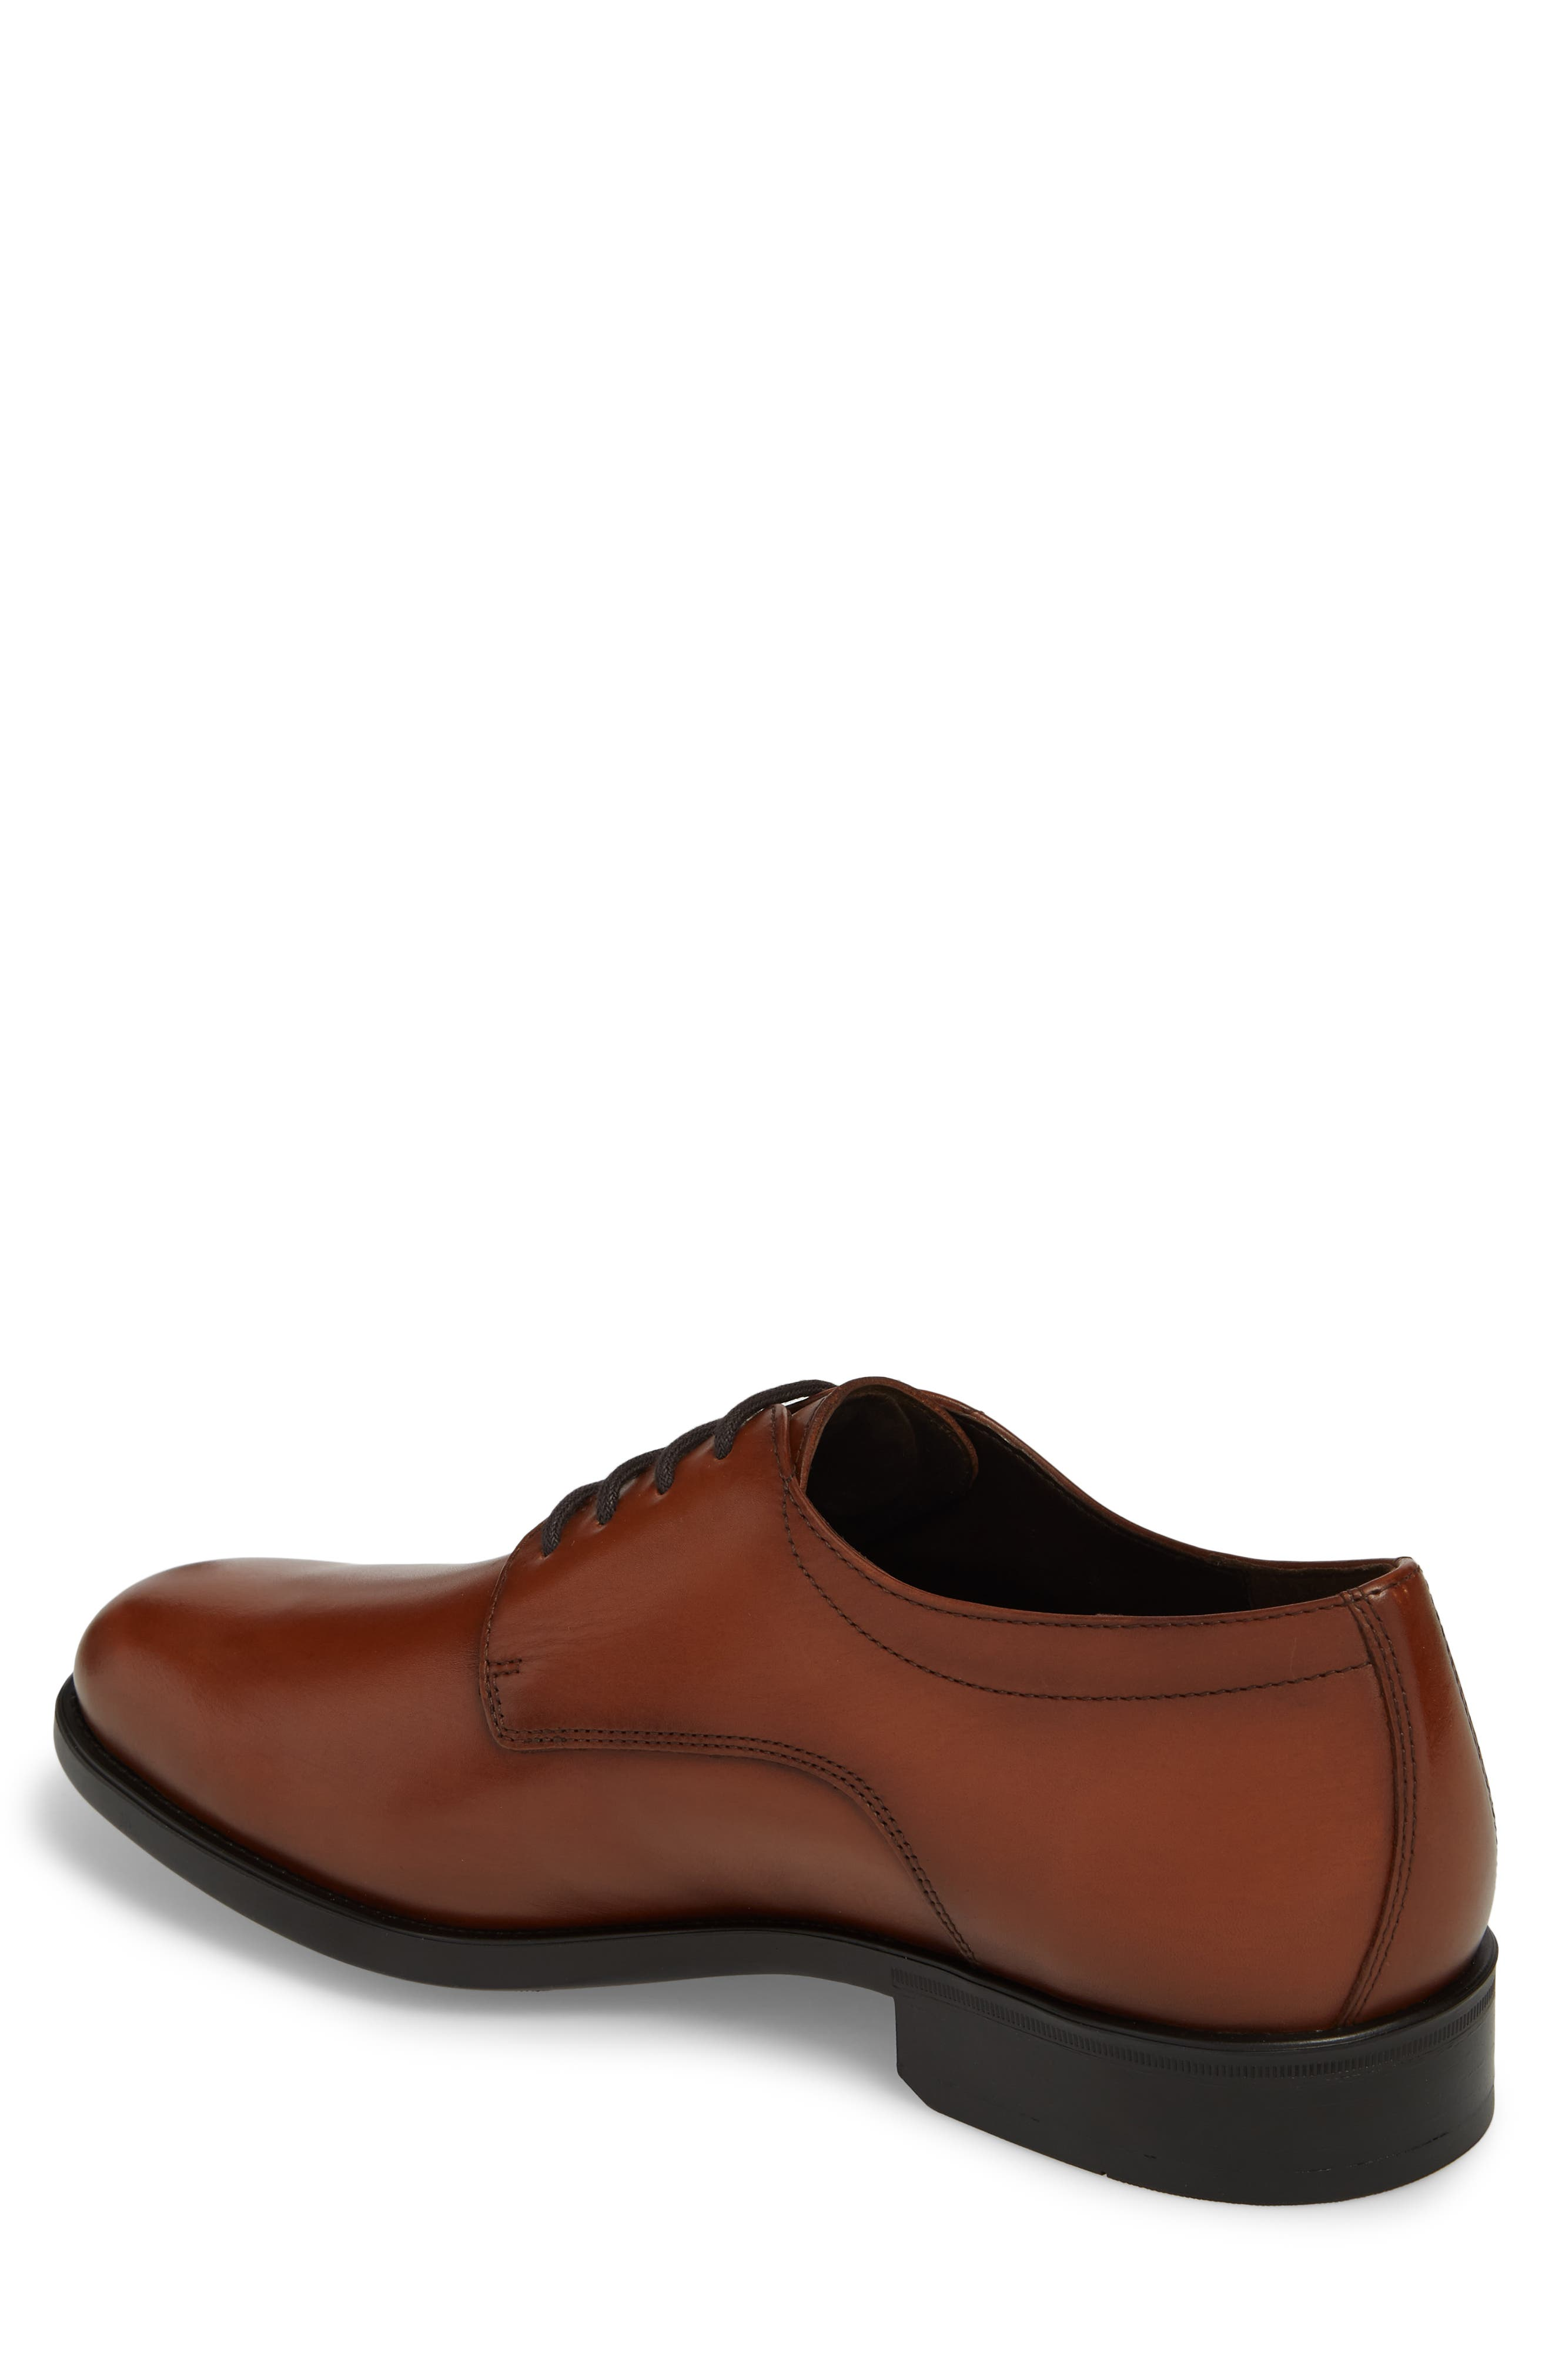 'Cooper' Plain Toe Derby,                             Alternate thumbnail 2, color,                             CHESTNUT LEATHER